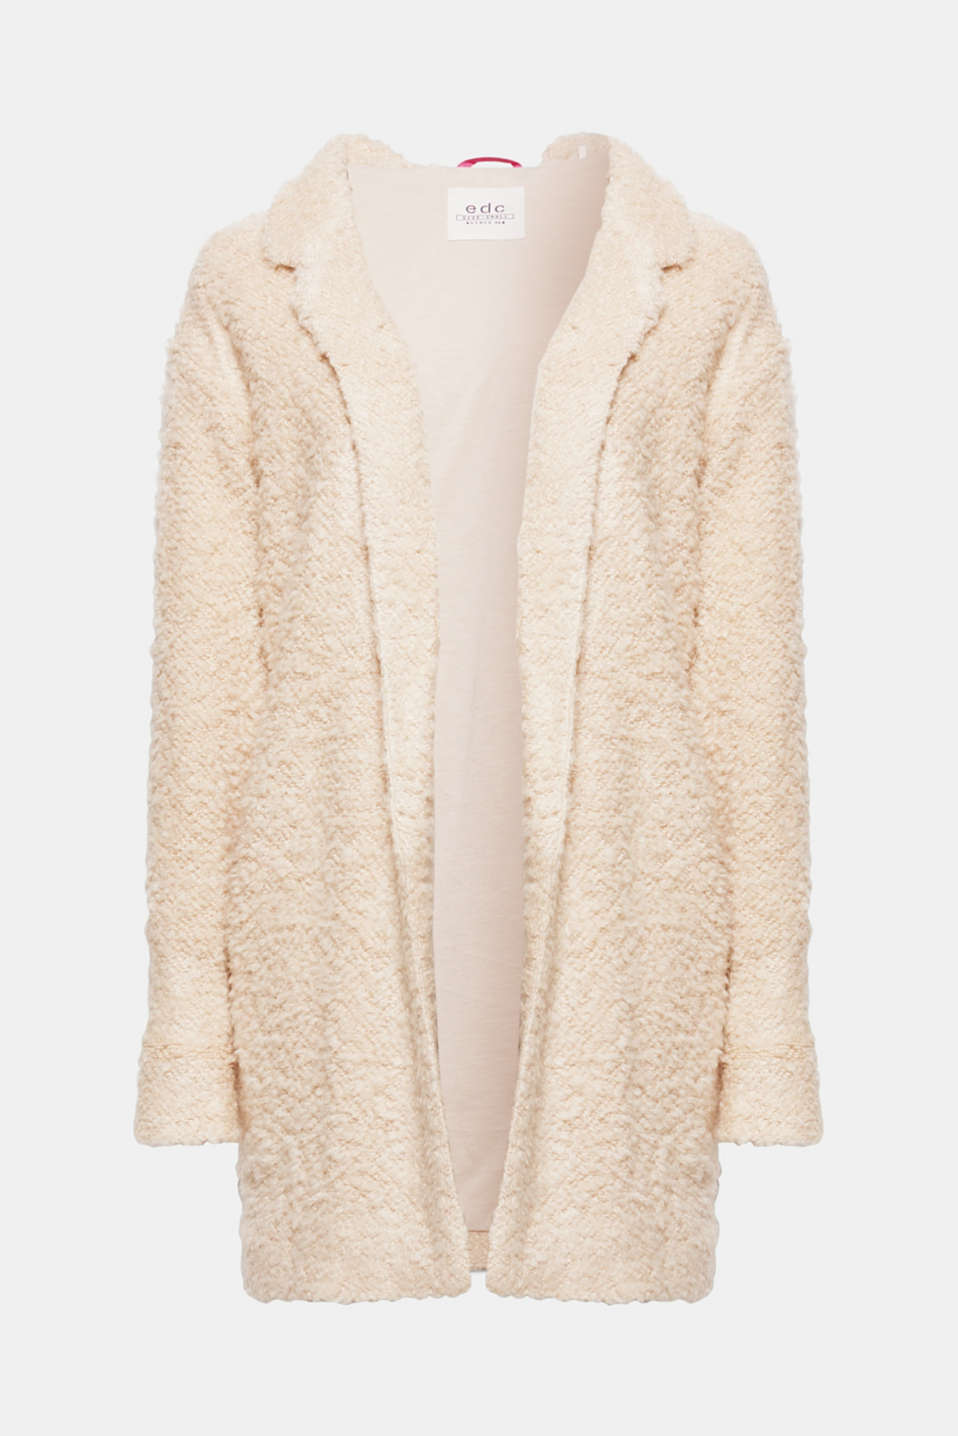 Trendy, simple and lightly warming, this soft bouclé jacket can be simply thrown on.